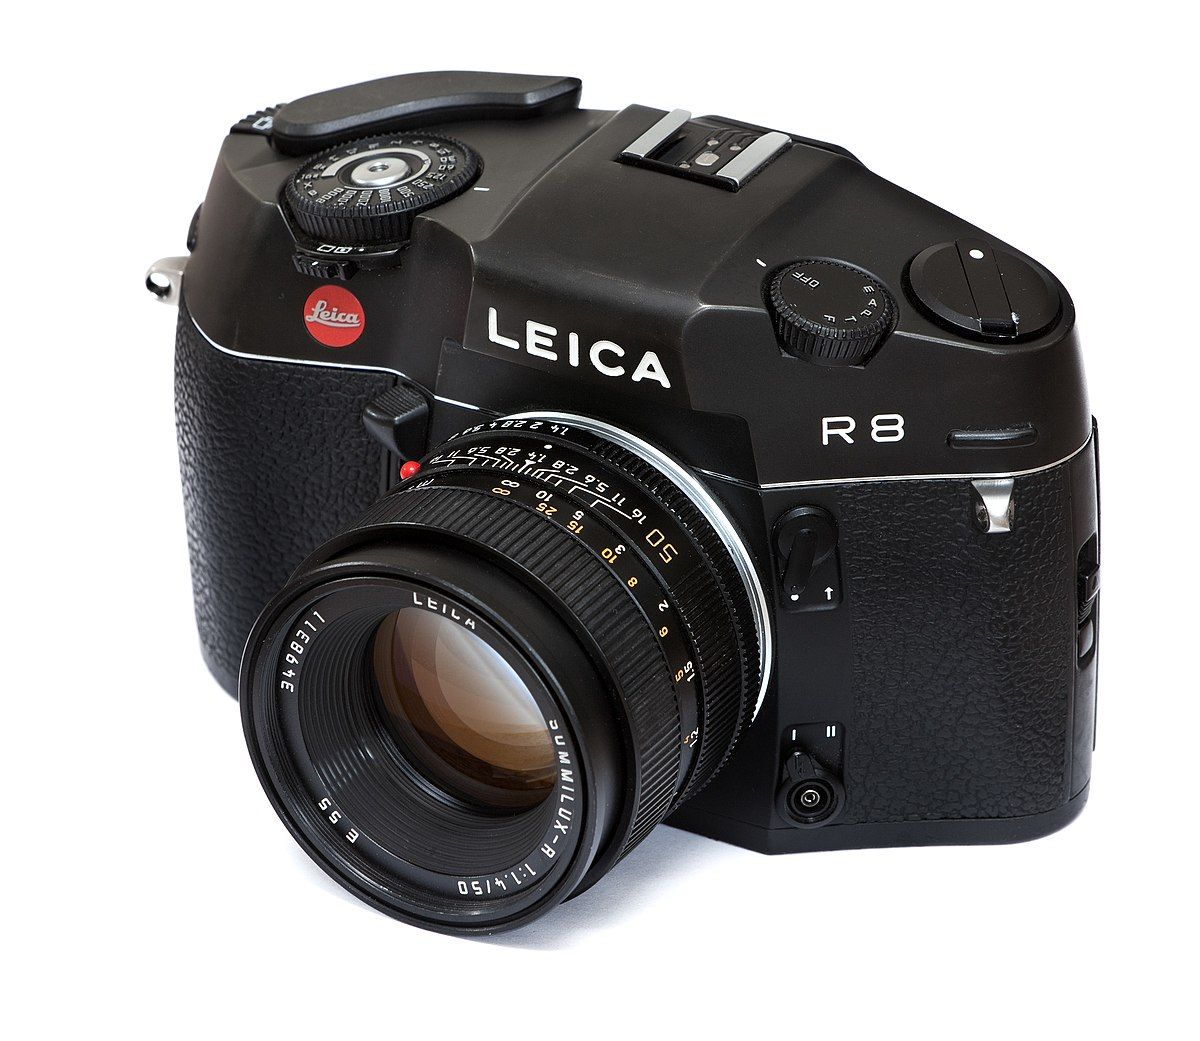 Leica r8 r9 wikipedia for Camera camera